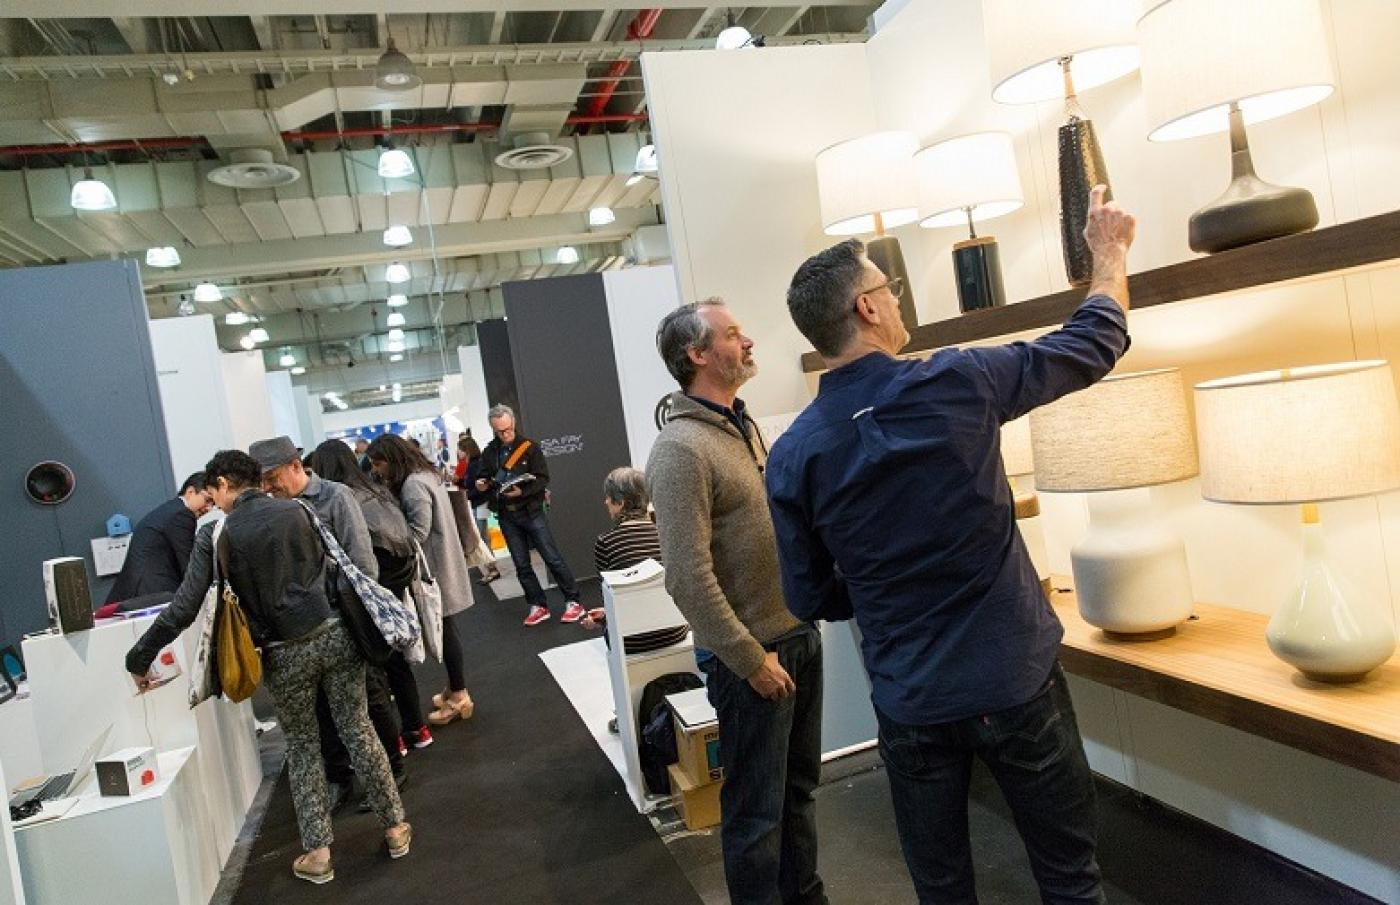 NYCxDESIGN Events Happening Now Through Wednesday